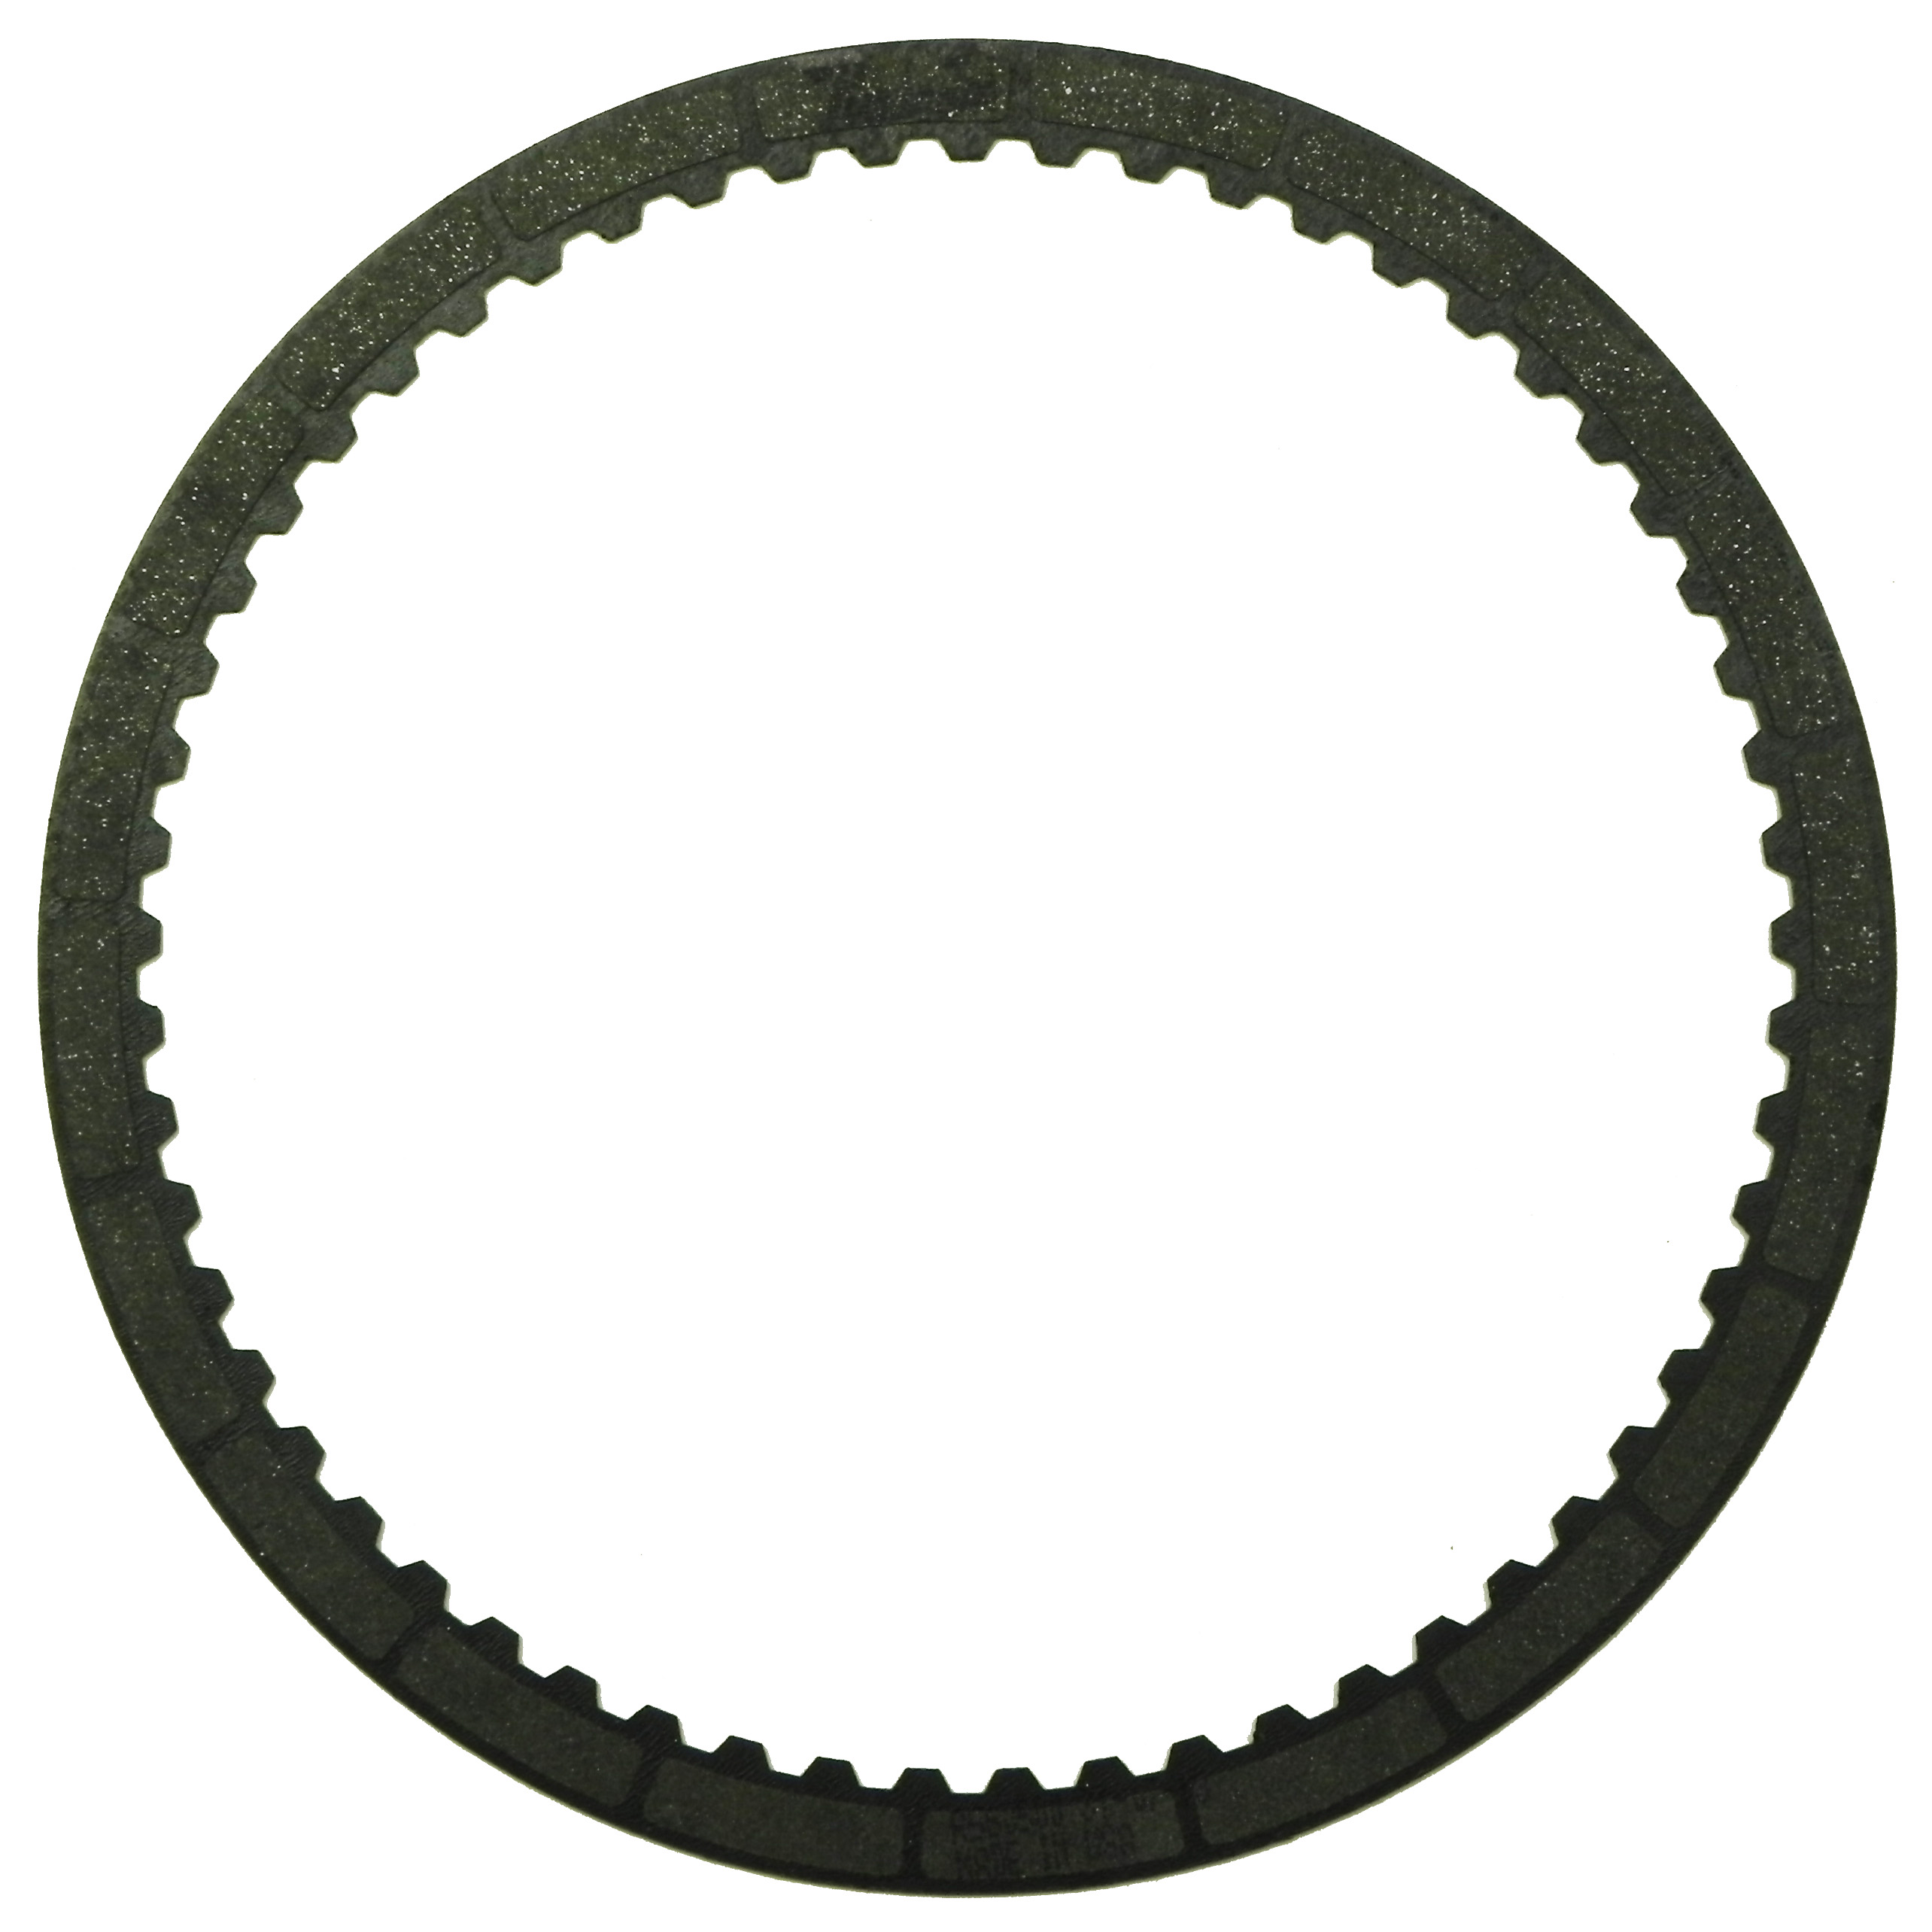 R560500 | 2007-ON Friction Clutch Plate High Energy B4 Reverse (#4 Brake) (Waved) High Energy